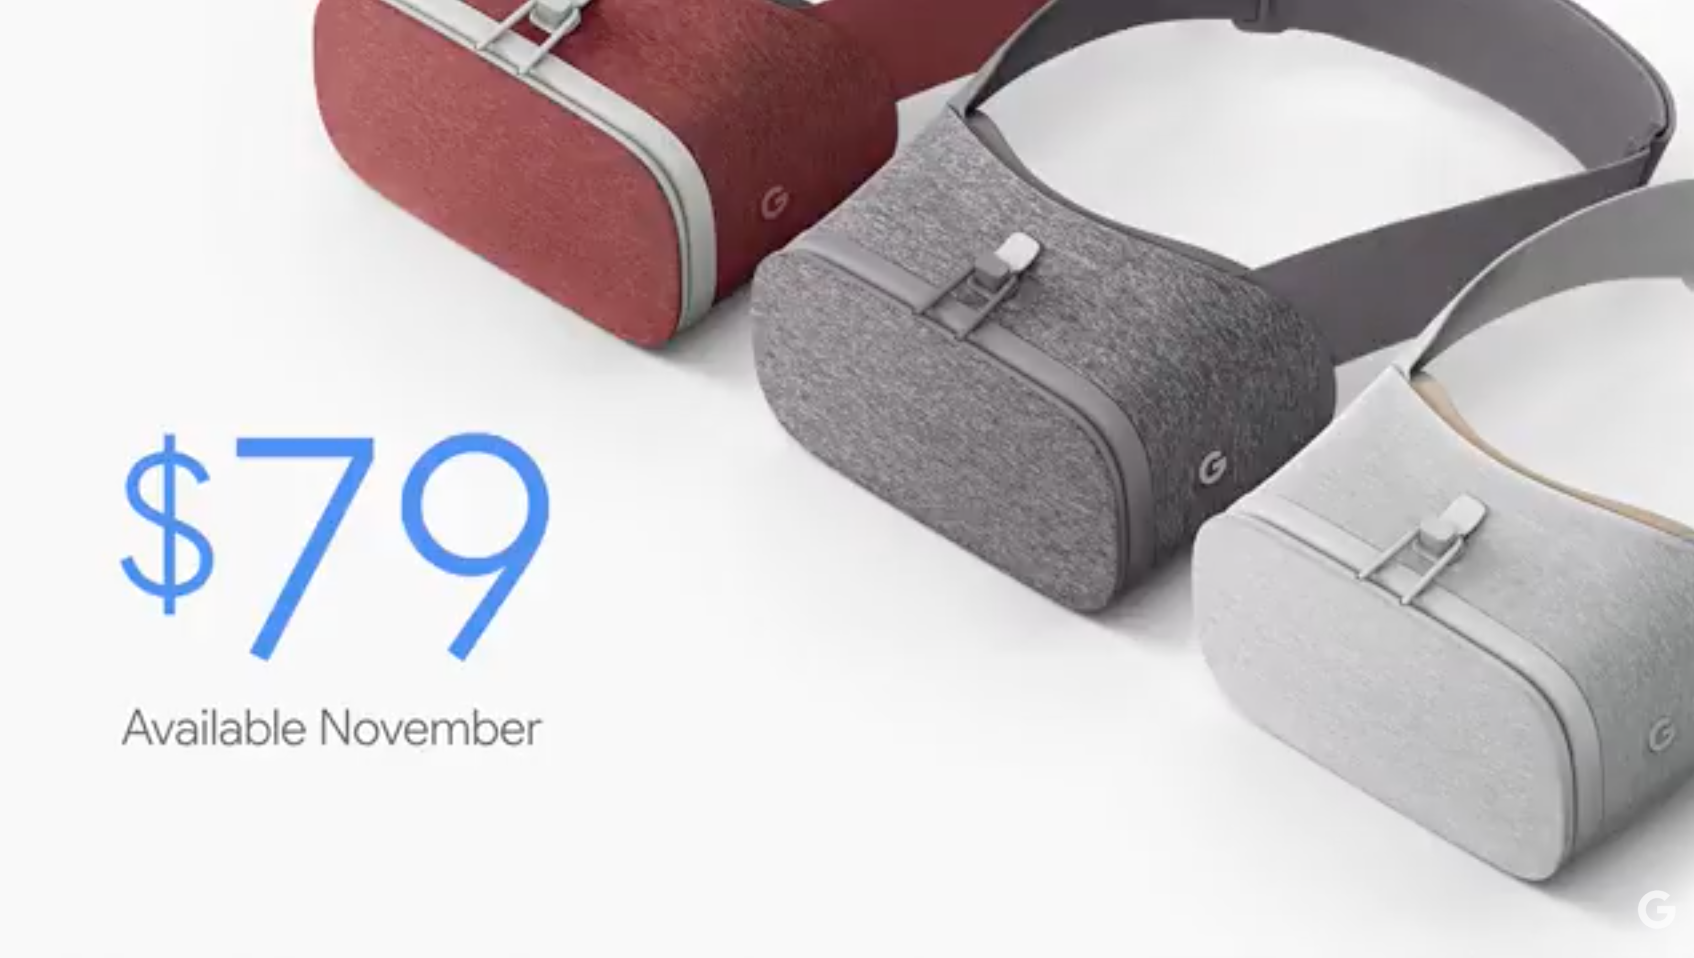 Google's Daydream View will have a VR Harry Potter game